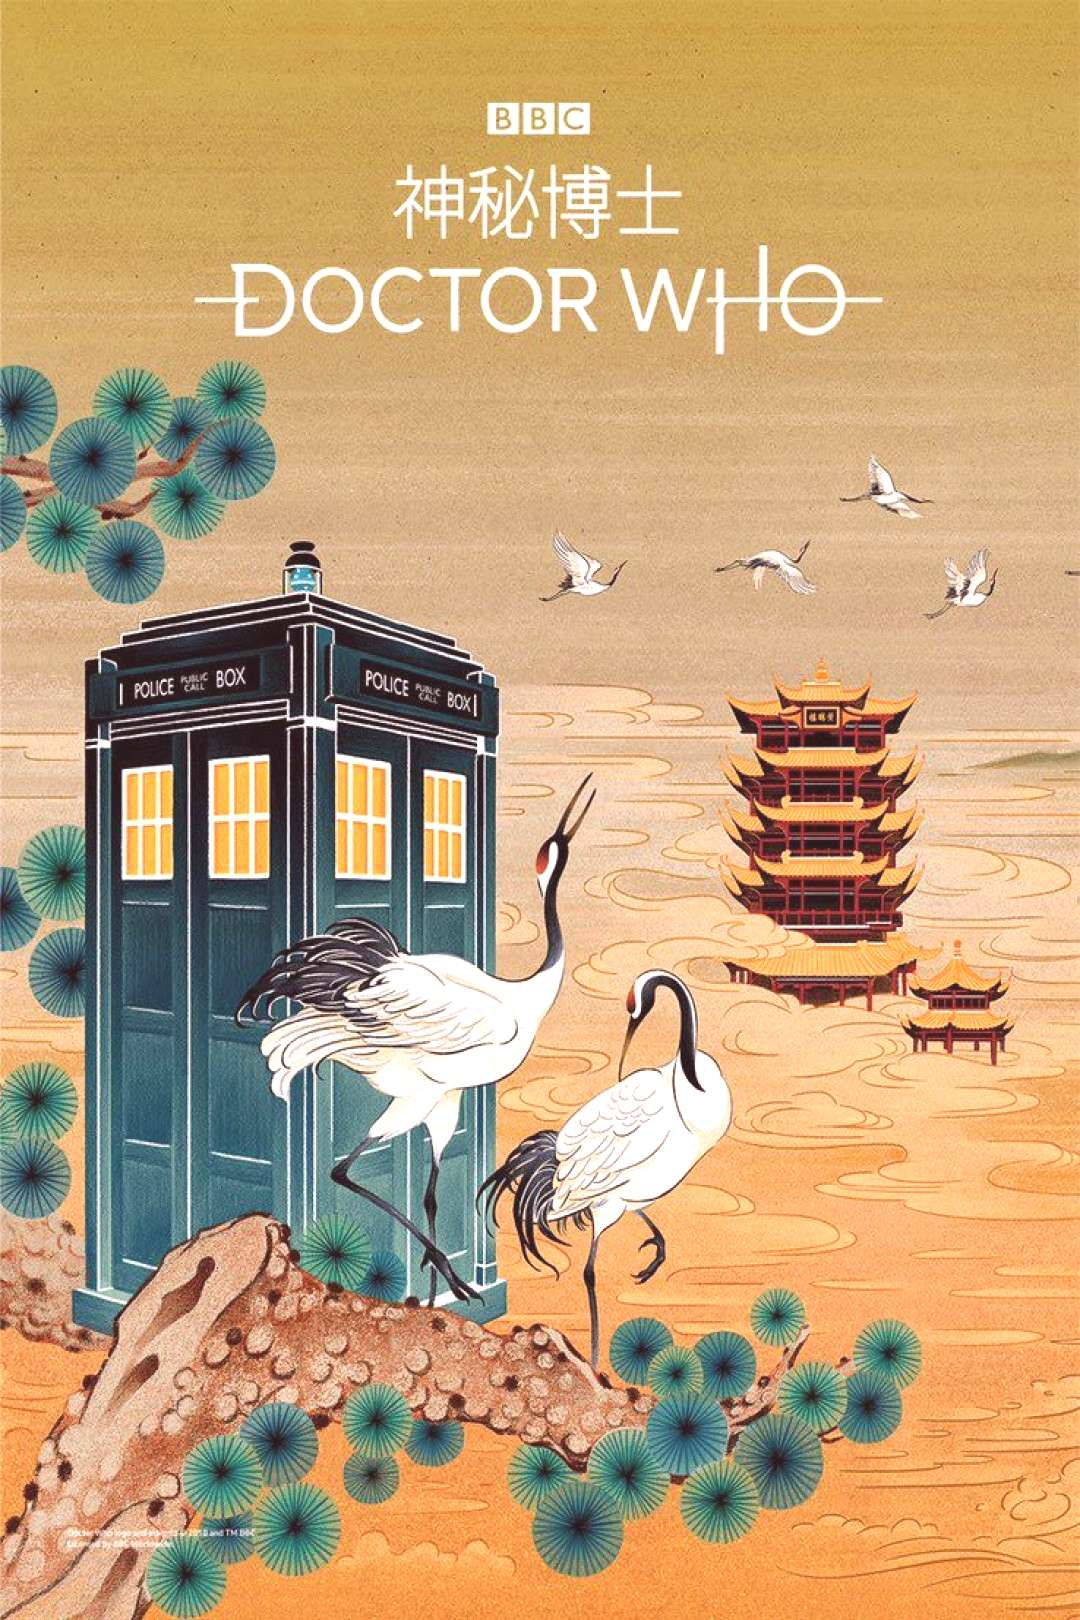 Just one of the official Doctor Who art pieces created especially for Shanghai ComicCon